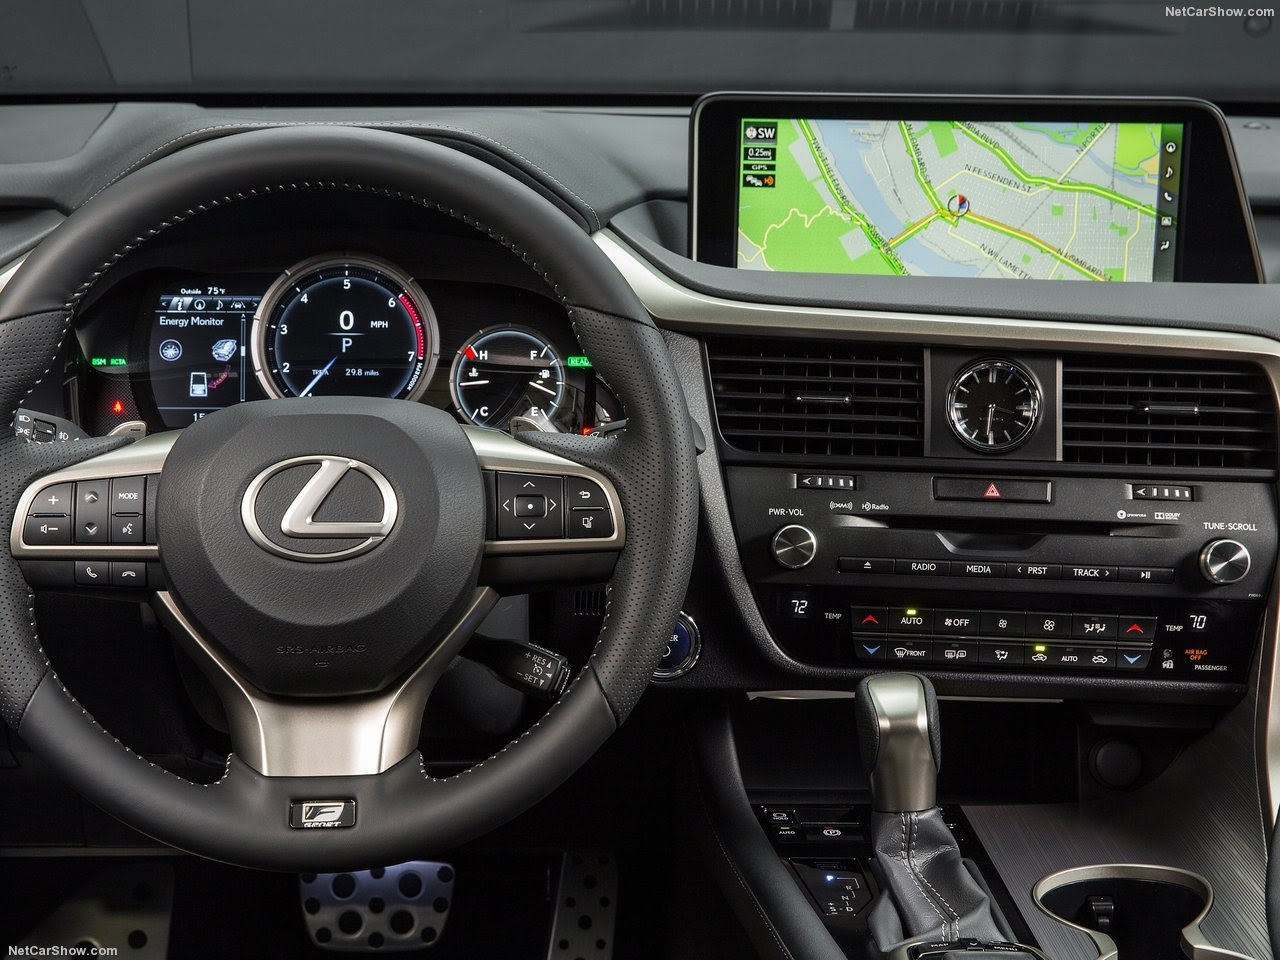 superb-design-of-the-black-dashboard-added-with-silver-accents-as-the-lexus-rc-2016-interior